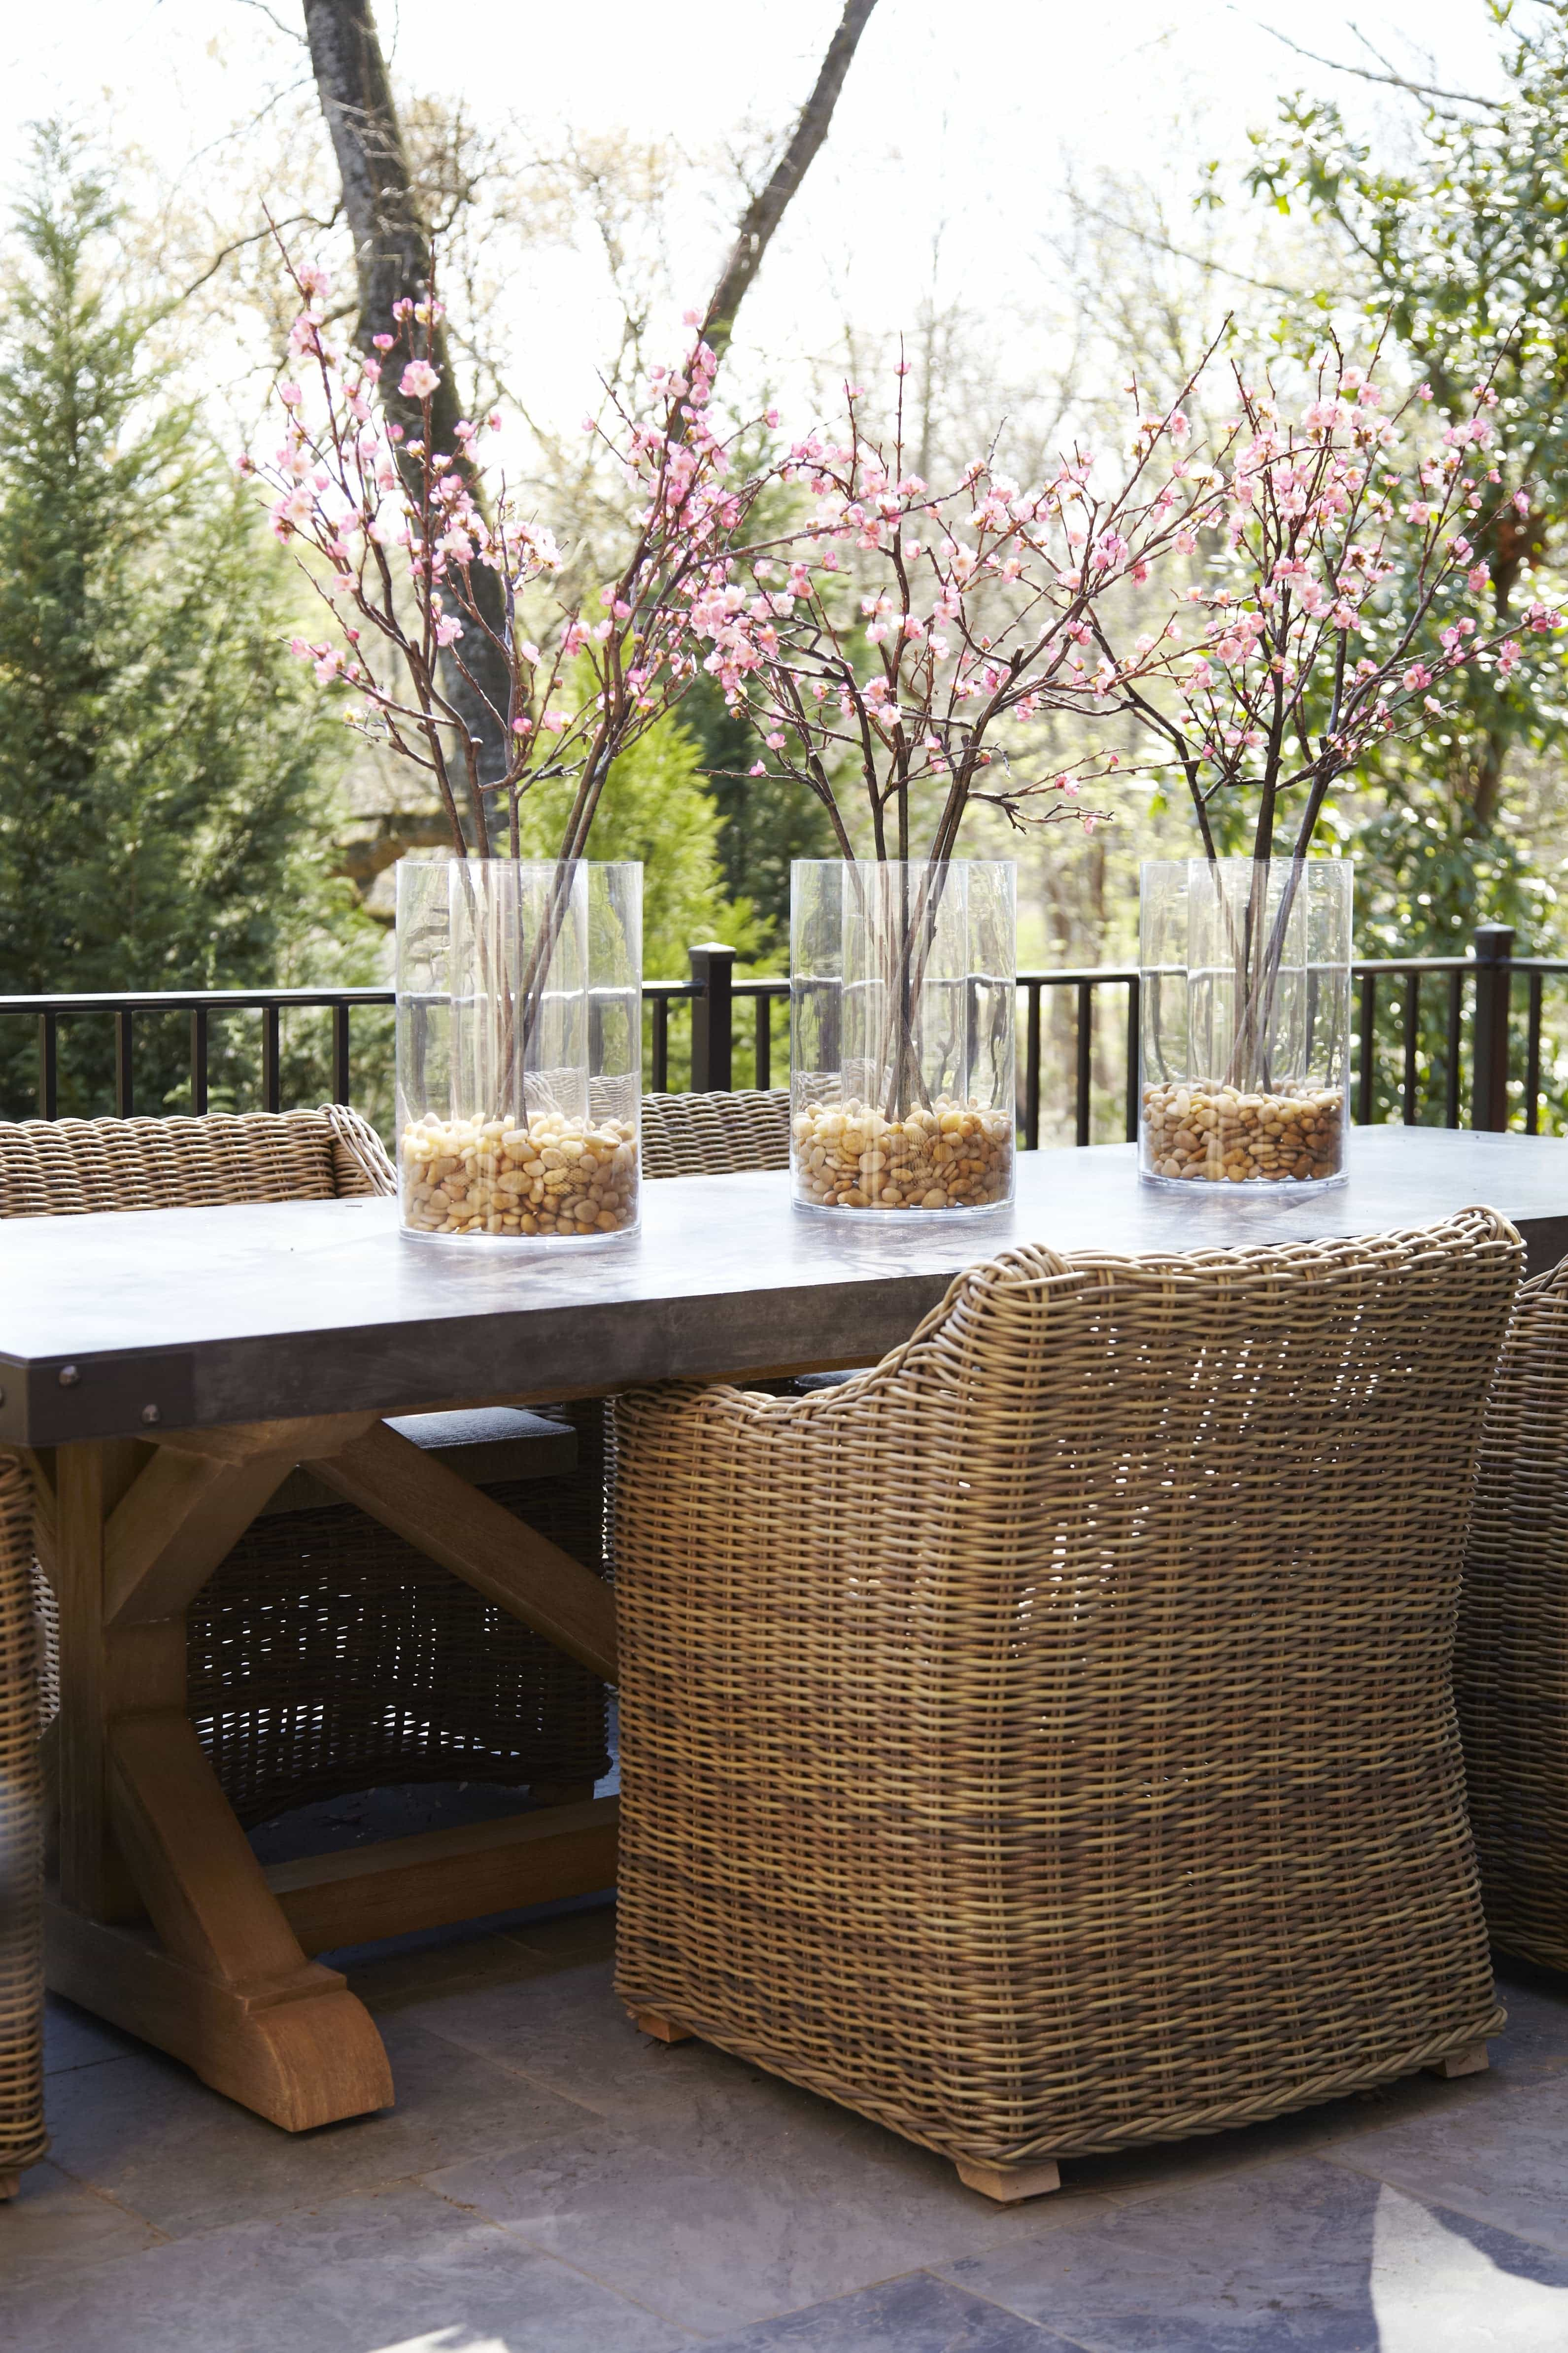 Featured Image of Pink Cherry Blossom Centerpieces And Wicker Armchairs Outdoor Dining